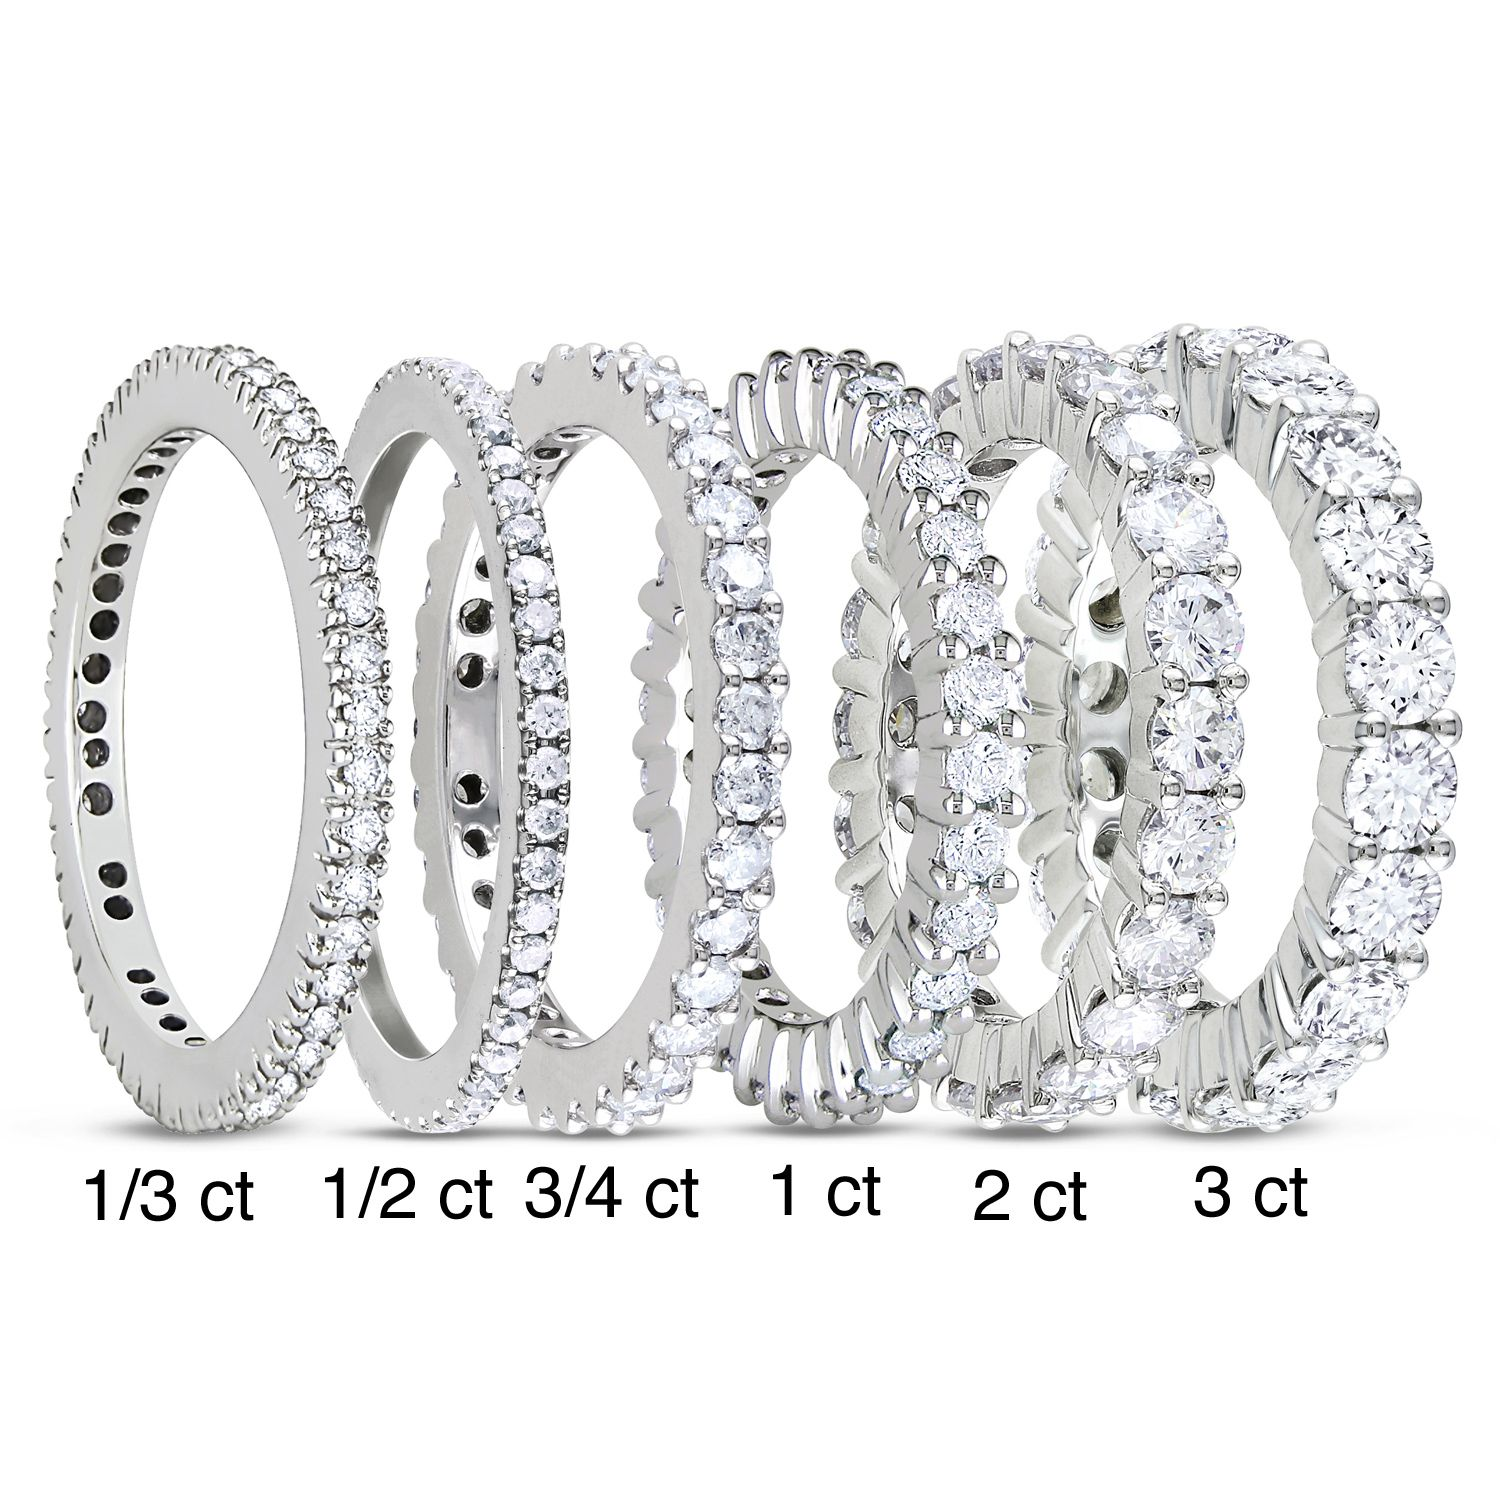 perfectly showcased feature diamonds pin forever rows diamond breathtaking endless these brilliant matched a platinum ct cut in tw bands ring anniversary for finest the of love that eternity rings lasts emerald